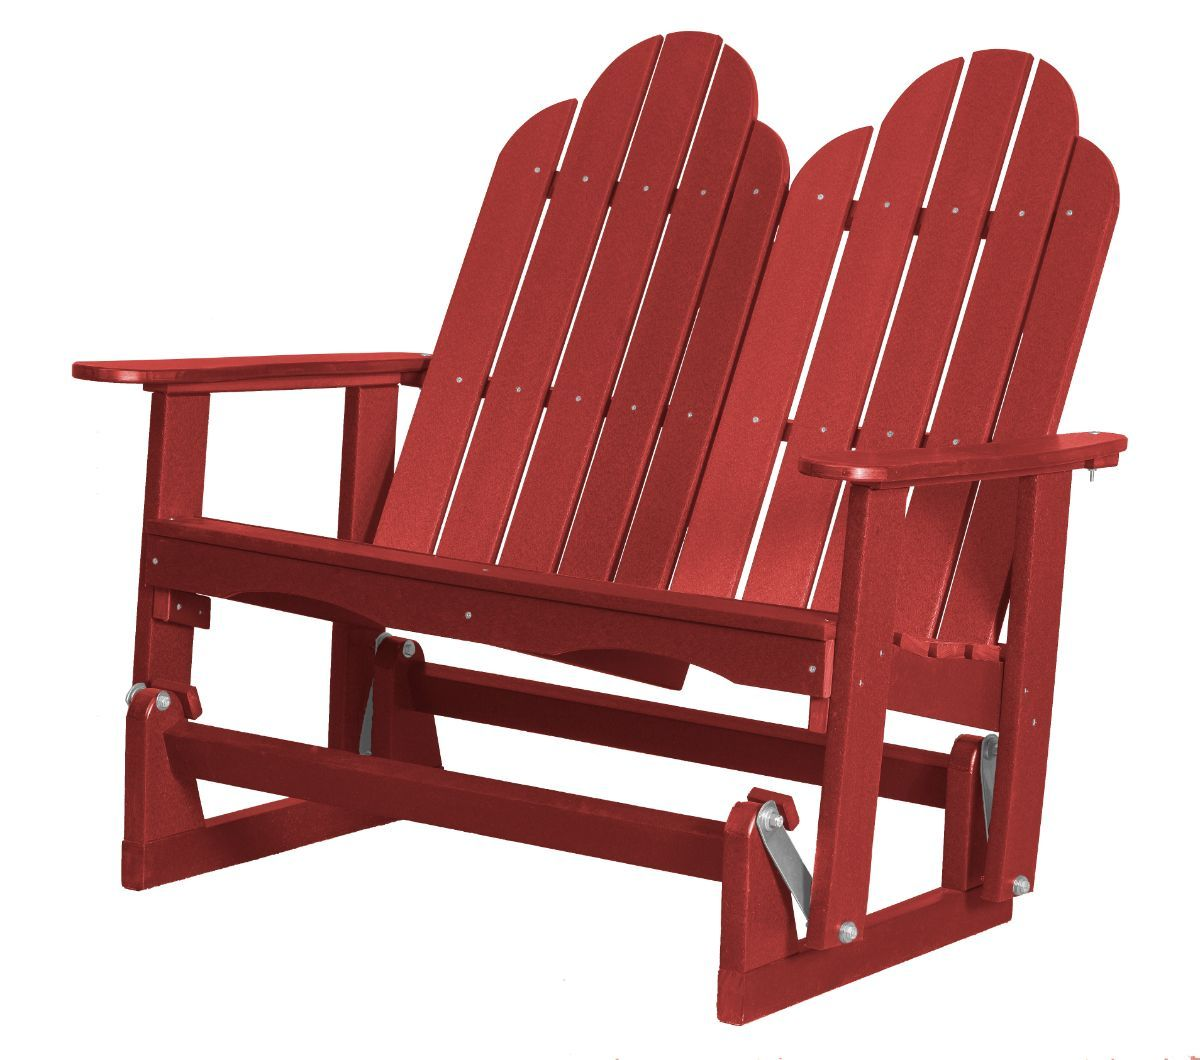 Cardinal Red Odessa Double Adirondack Glider